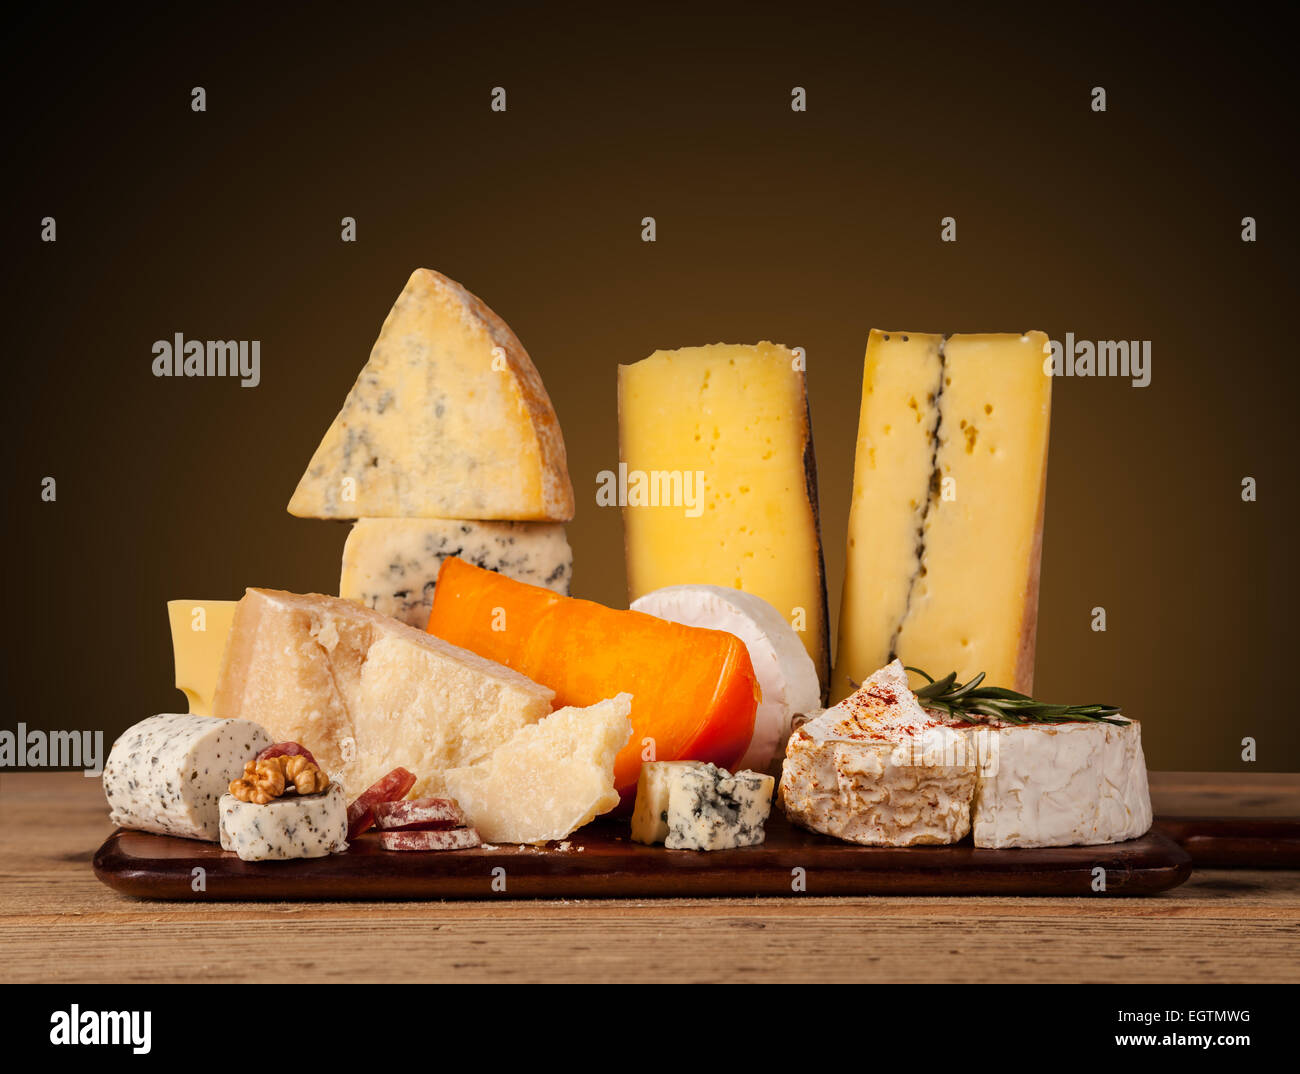 Various kind of cheese served on wooden table - Stock Image